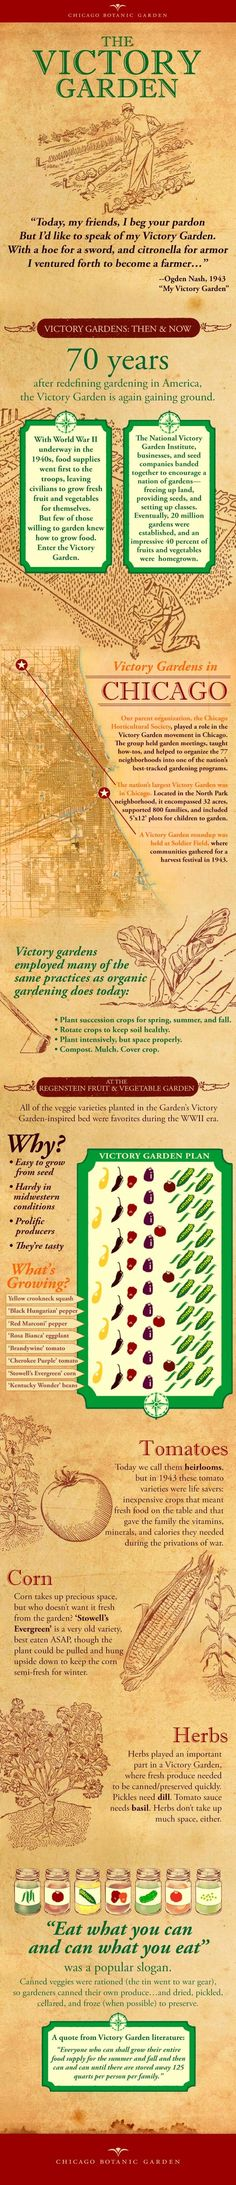 An infographic about Victory Gardens from the Chicago Botanic Garden